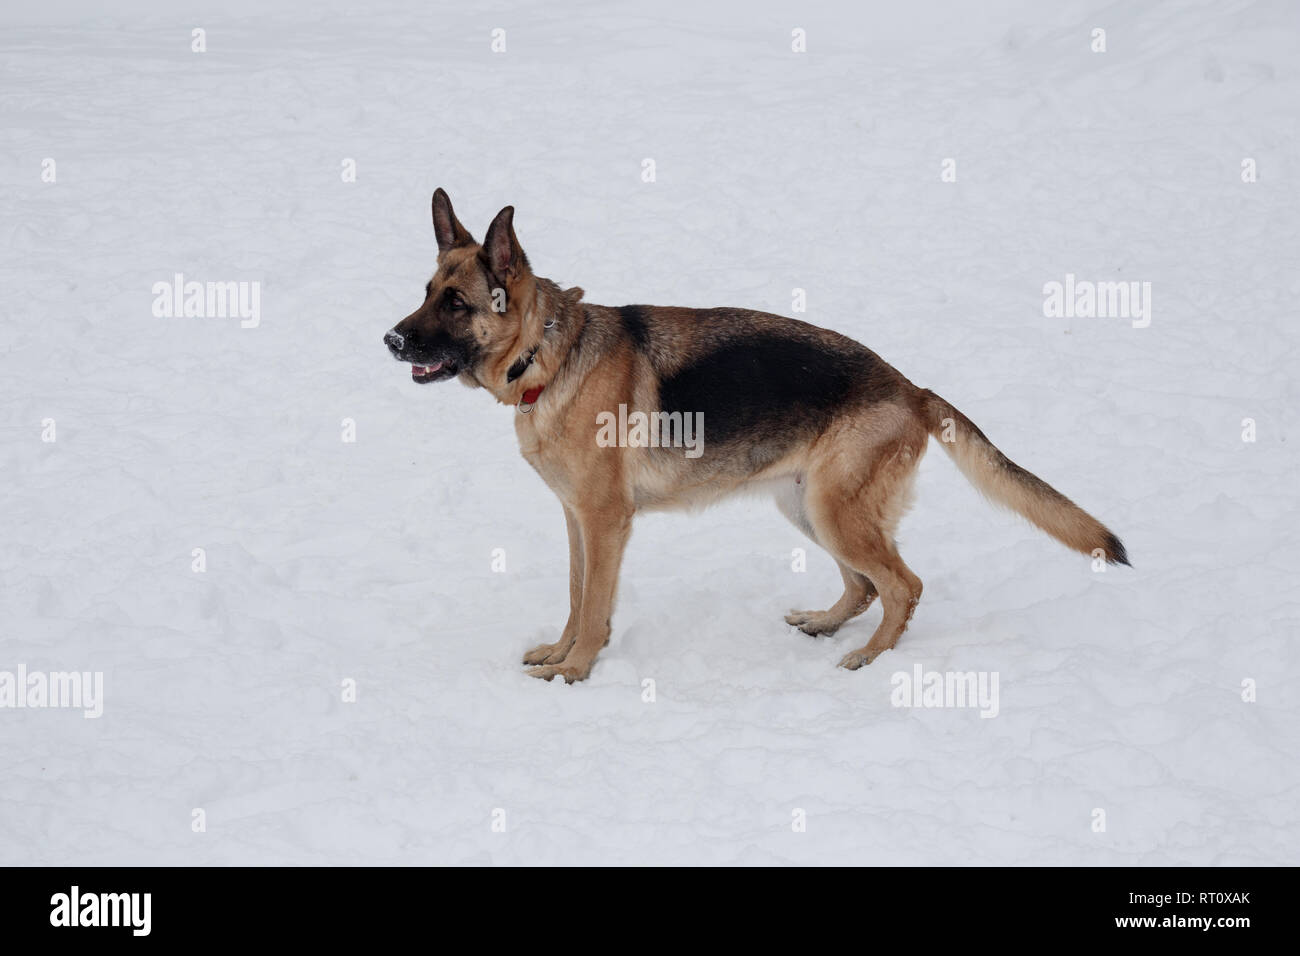 Cute german shepherd with black mask is standing on the white snow. Pet animals. Purebred dog. - Stock Image